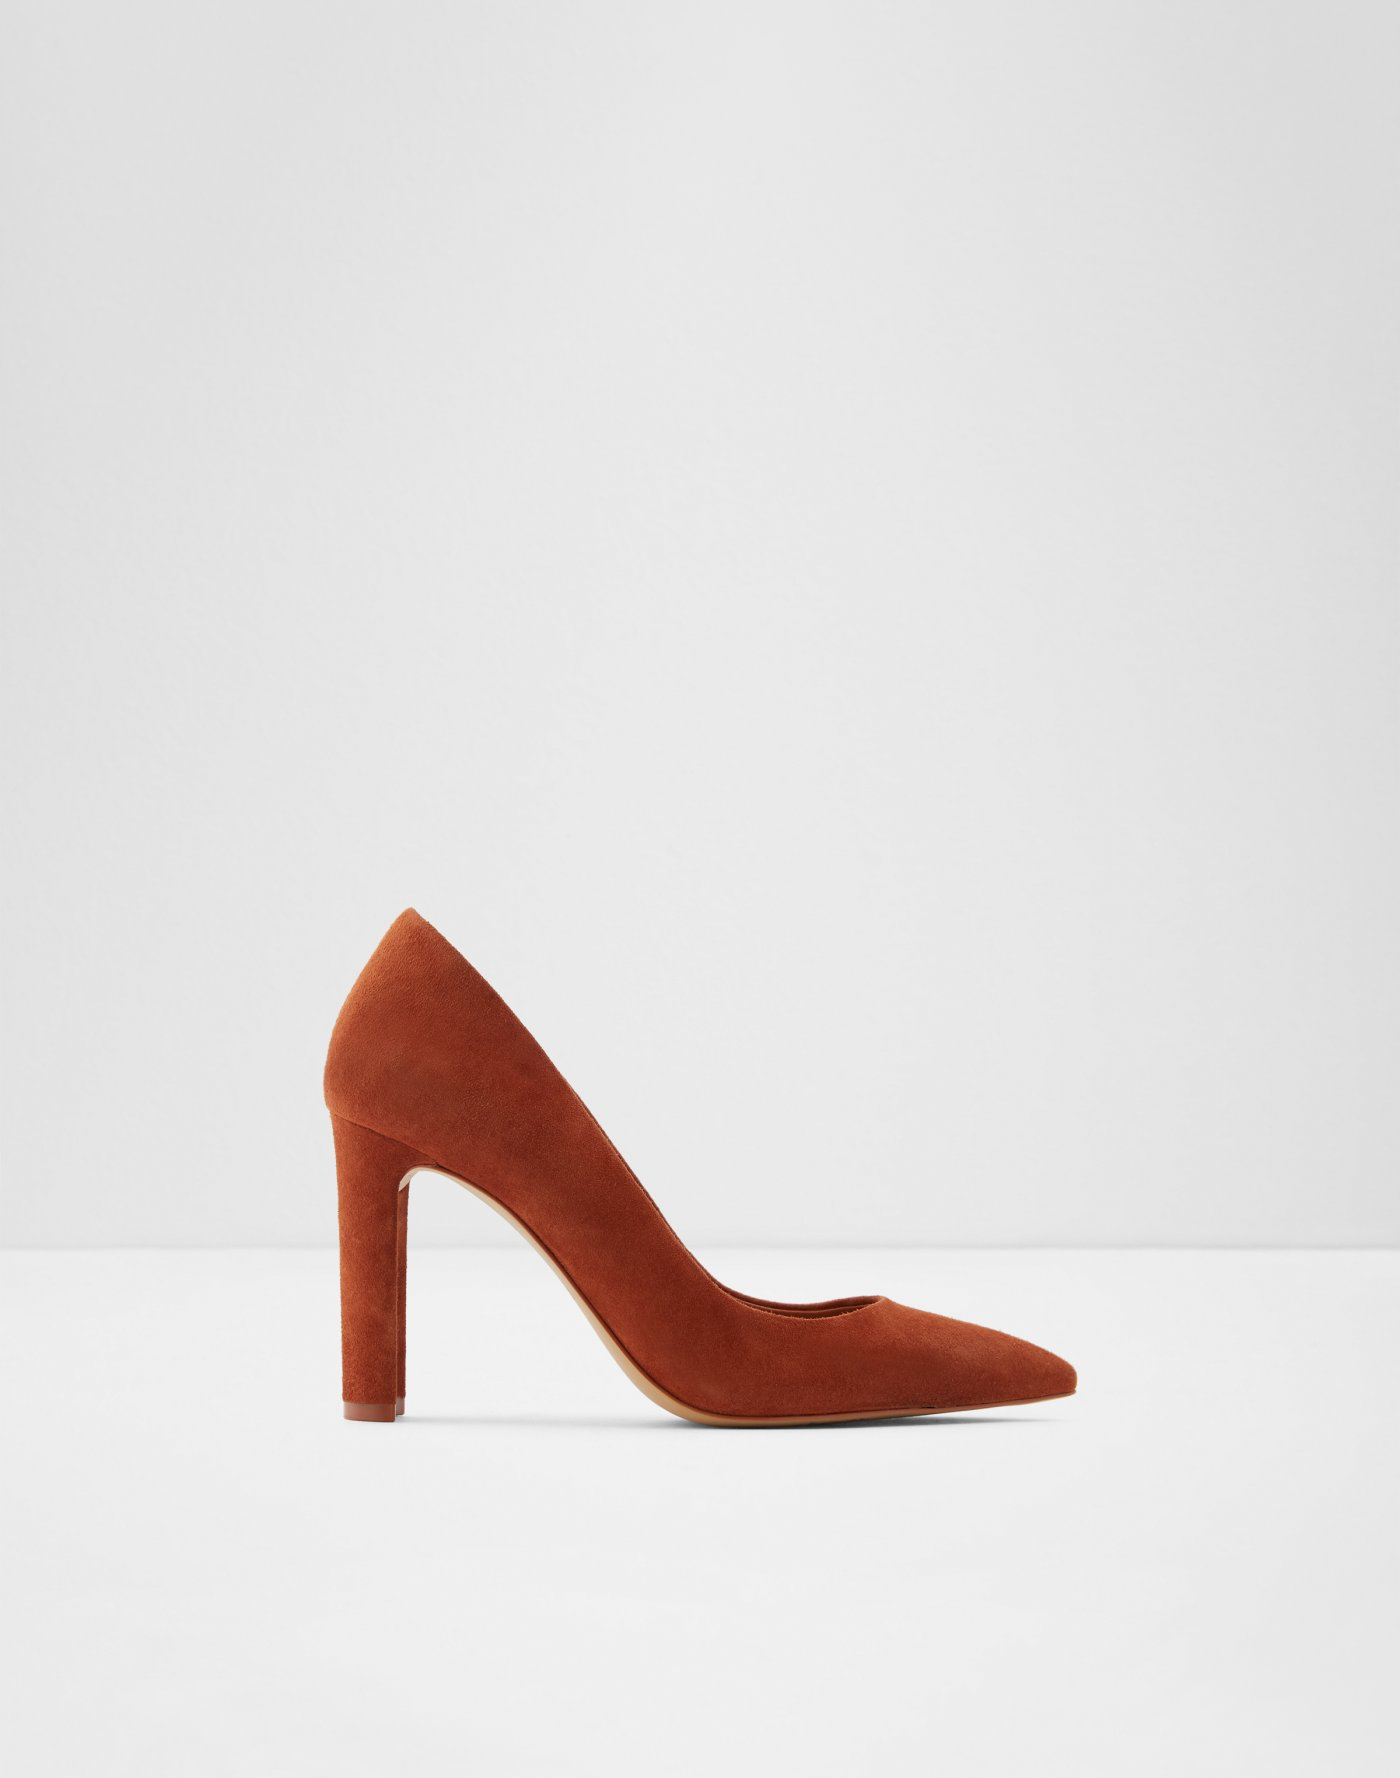 b2e1c95f9 Women's Heels | Black, Red, Nude, Silver Heels | ALDO US | Aldoshoes.com US